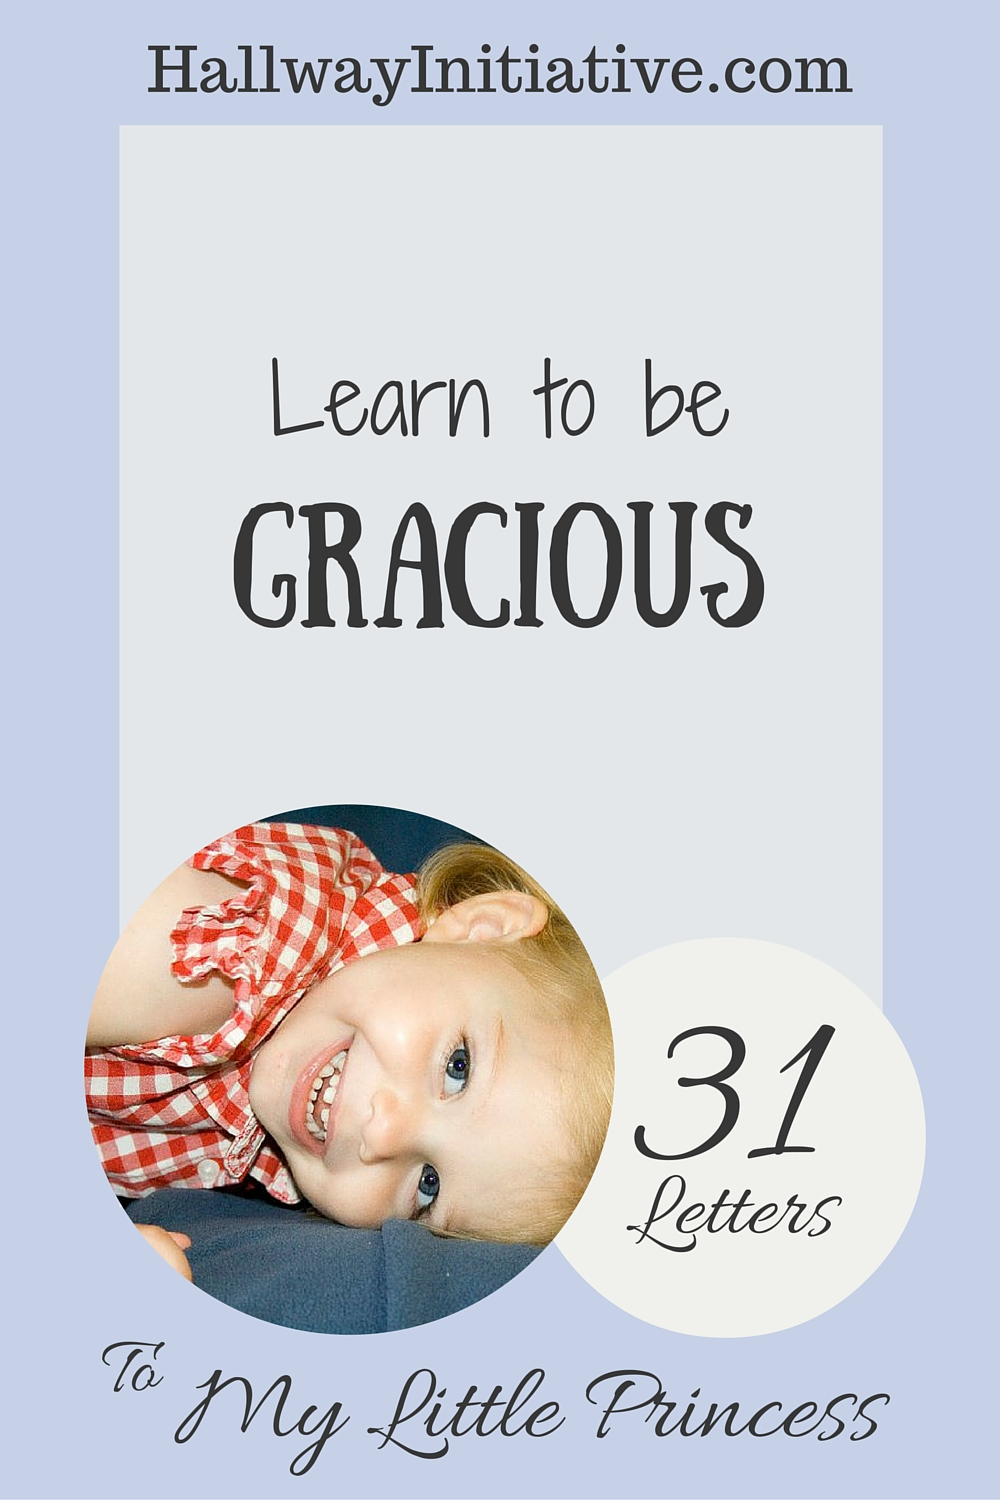 Learn to be gracious